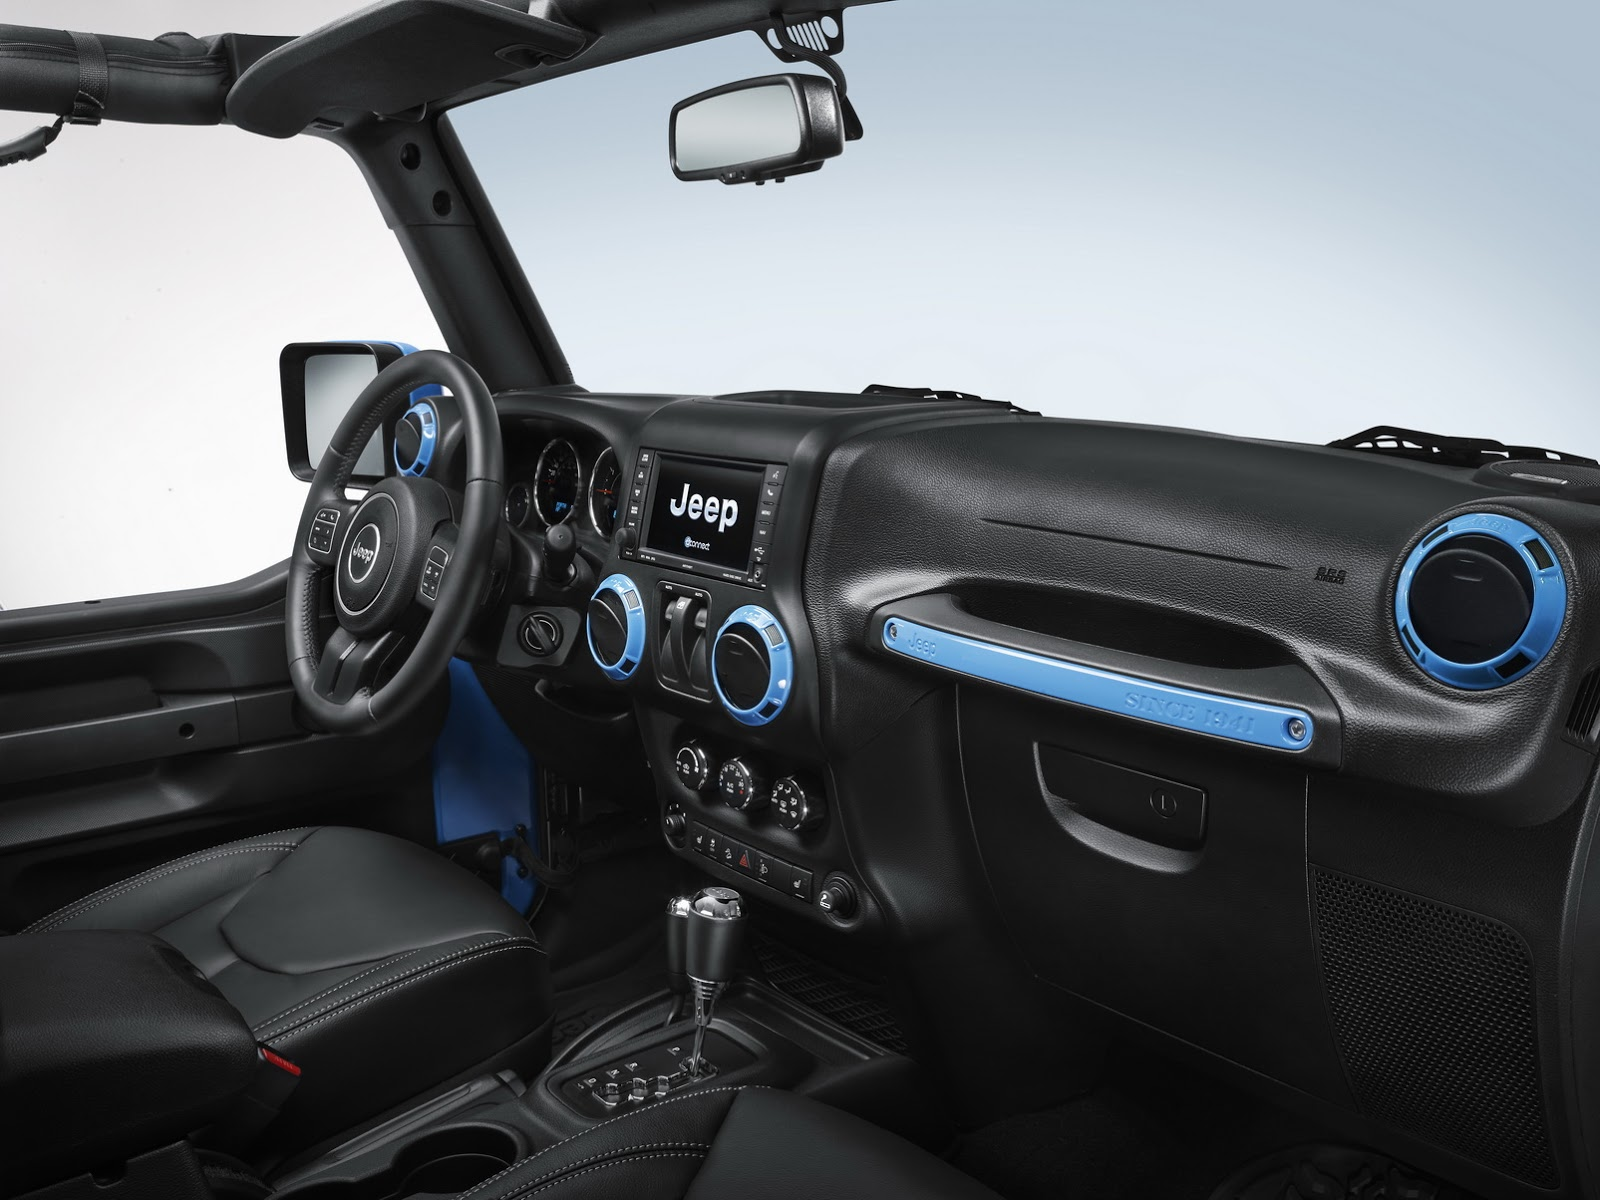 Jeep Wrangler Rubicon With Mopar Accessories Arrives In Geneva Carz Tuning